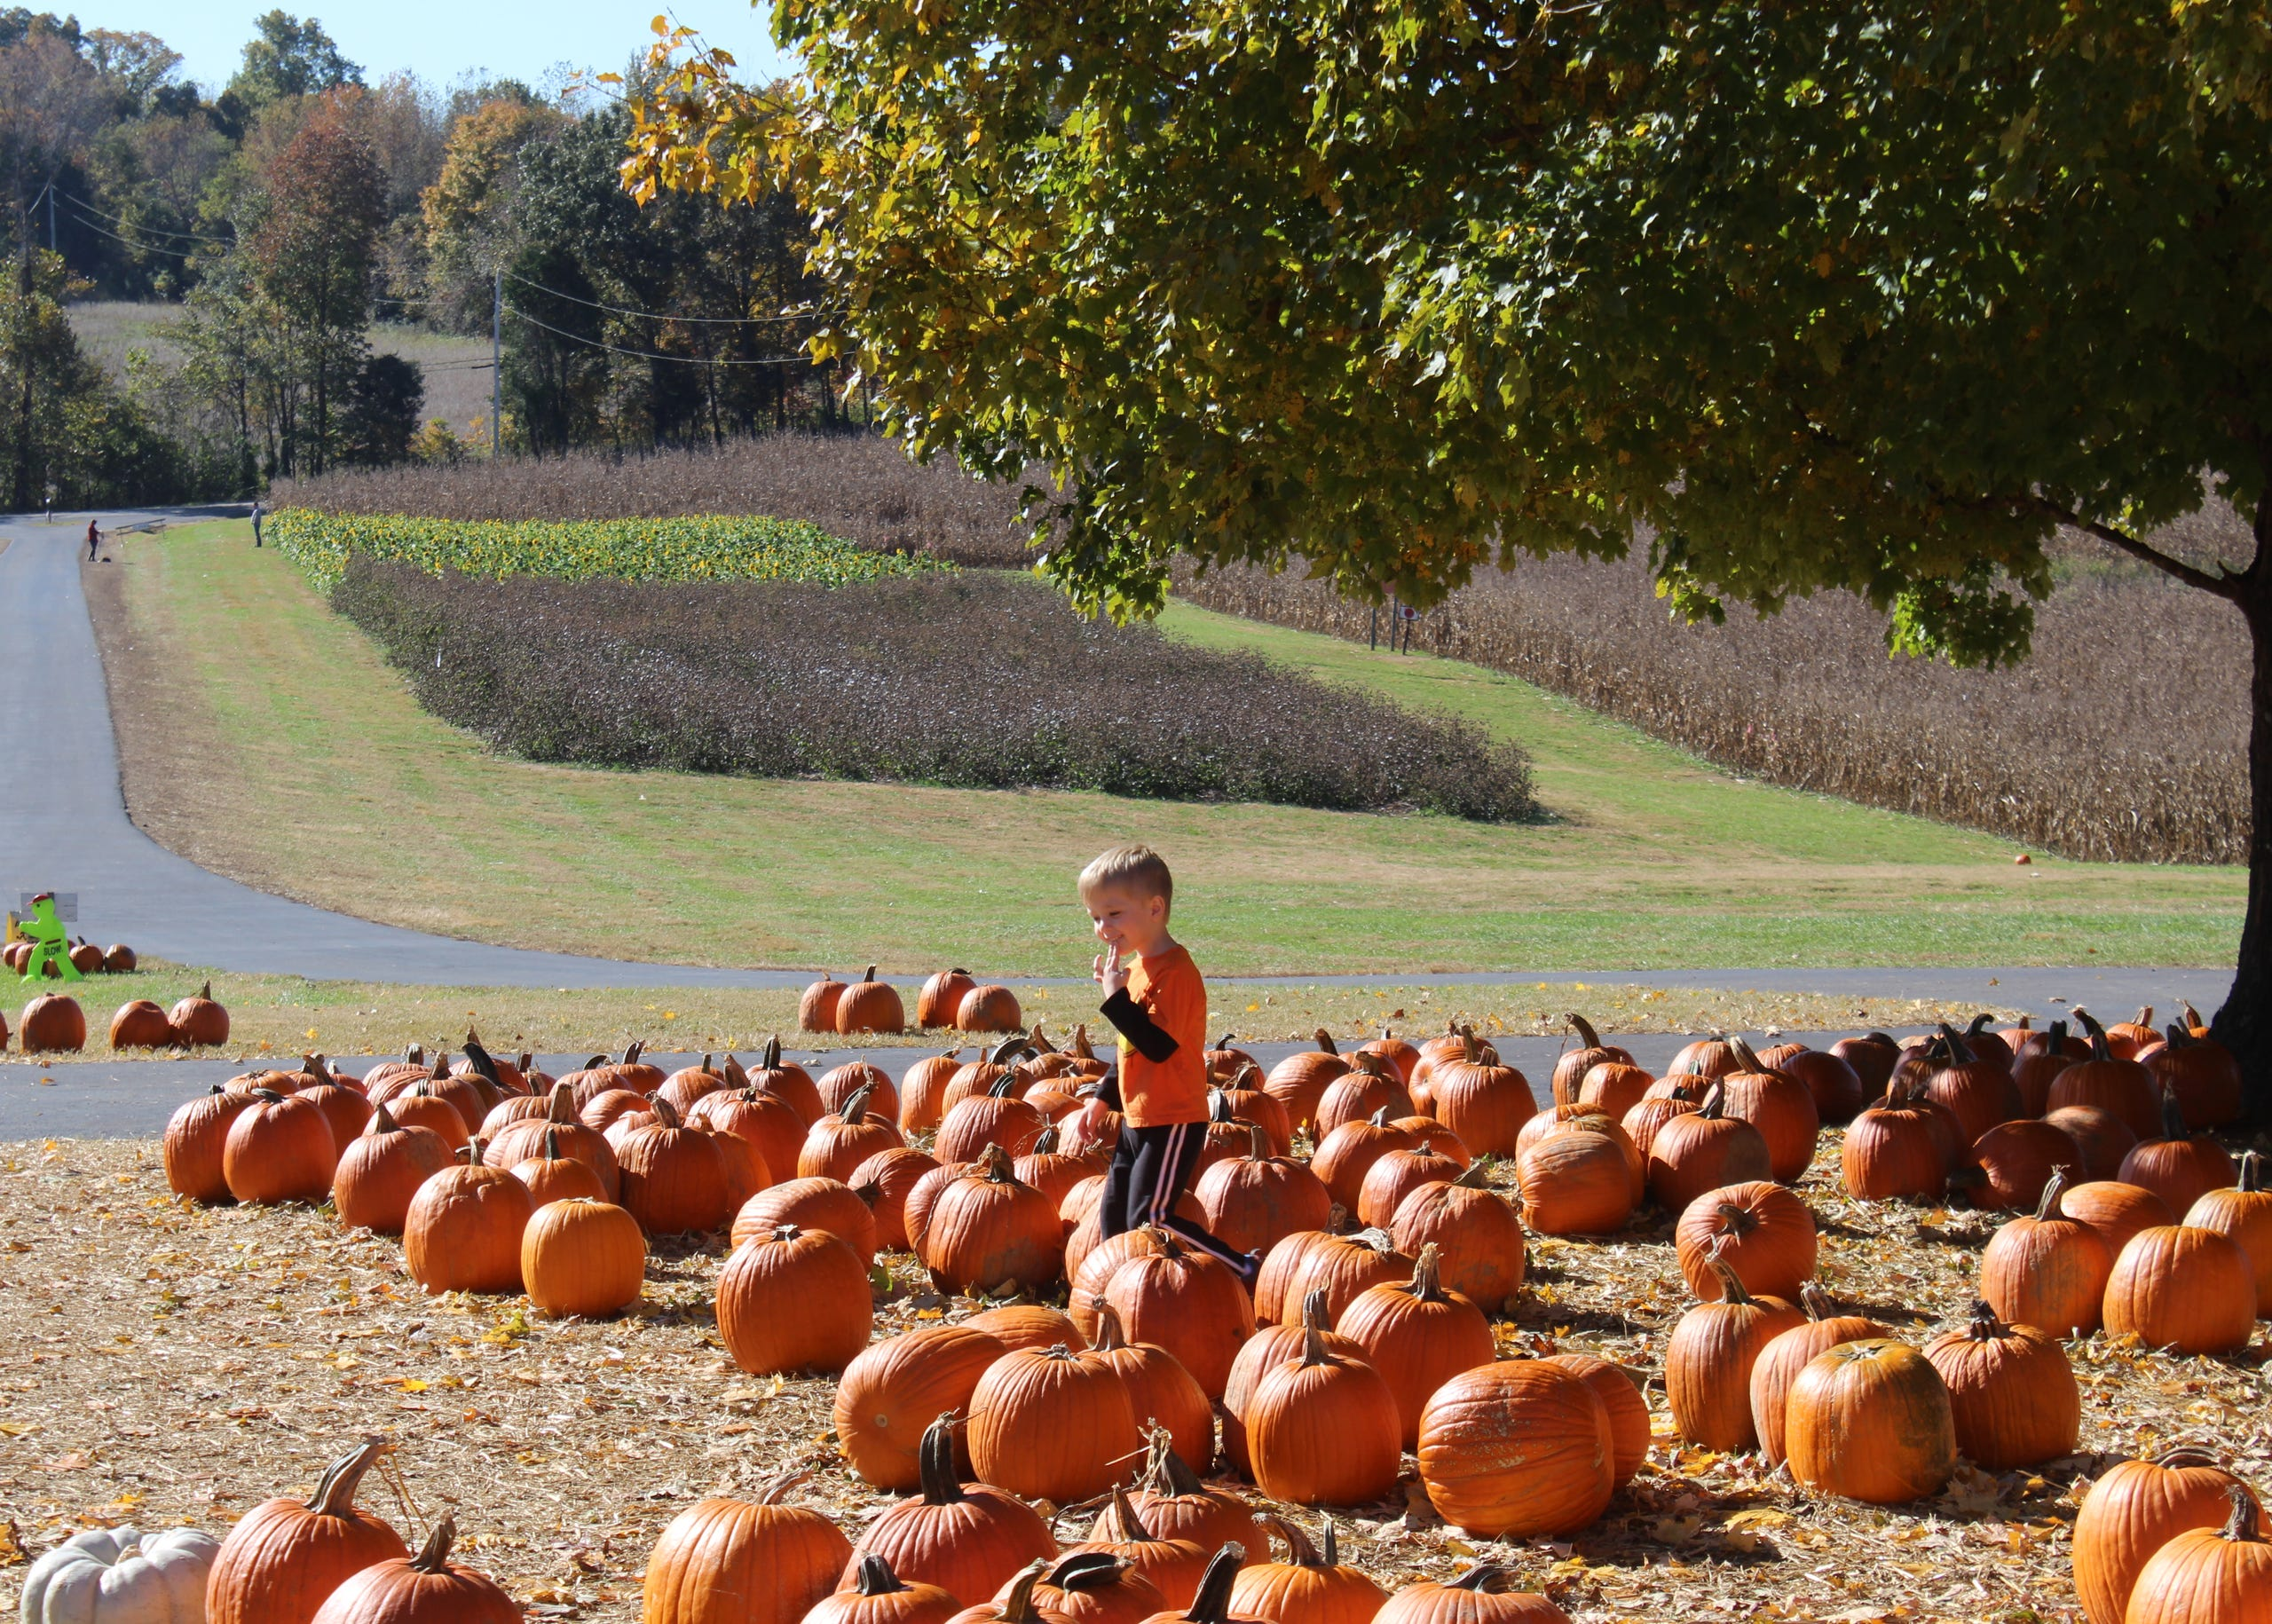 Apartments planned near Boyd's Pumpkin Patch